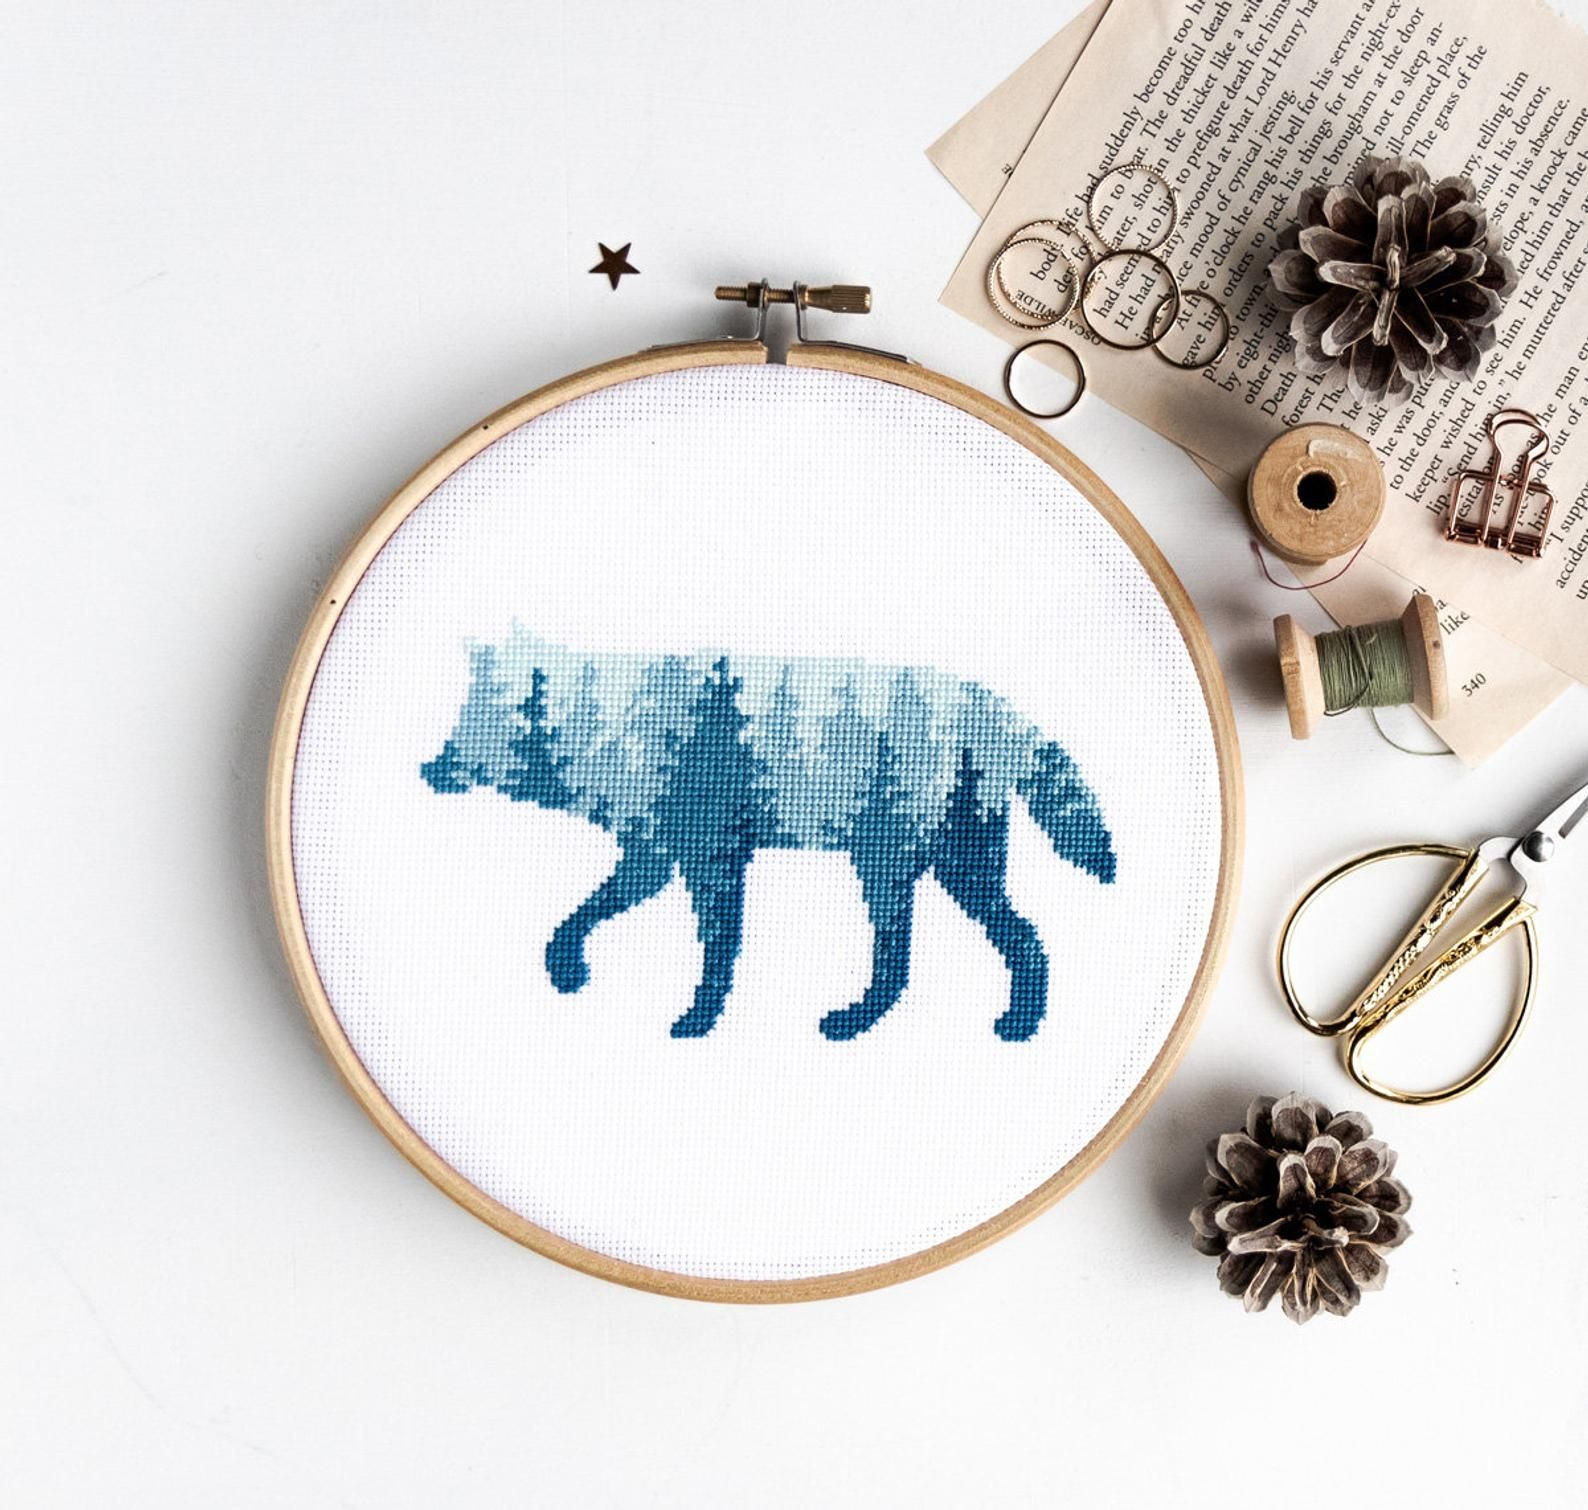 foxes cross stitch embroidery kit beginner hand embroidery kit Animal embroidery kit modern hand embroidery materials included gift